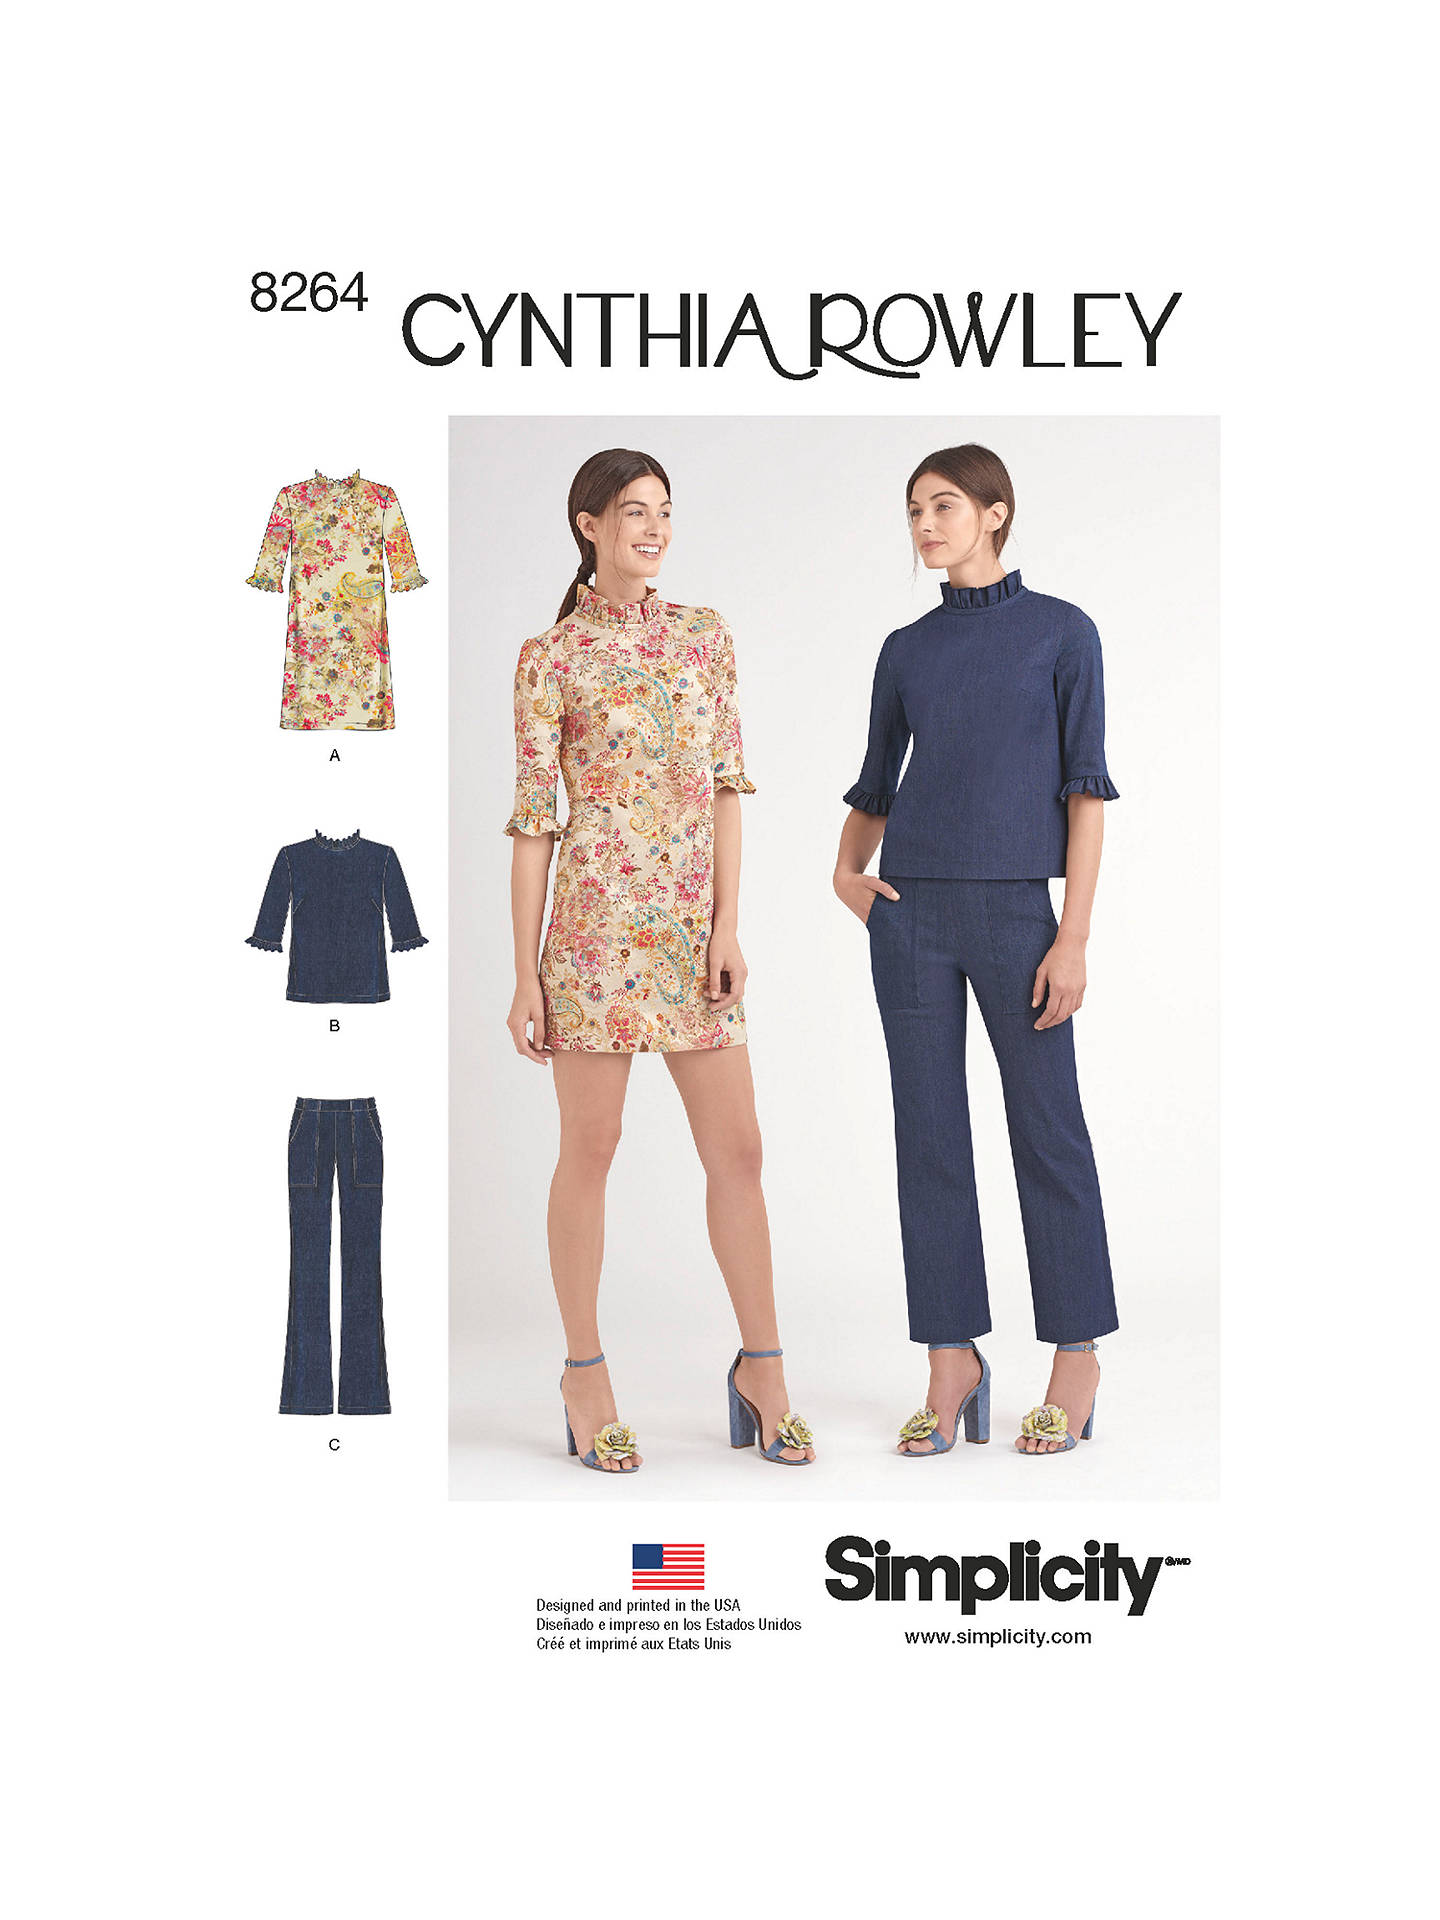 6aa3ca831cf Buy Simplicity Women's Cynthia Rowley Sewing Pattern, 8264, P5 Online at  johnlewis. ...